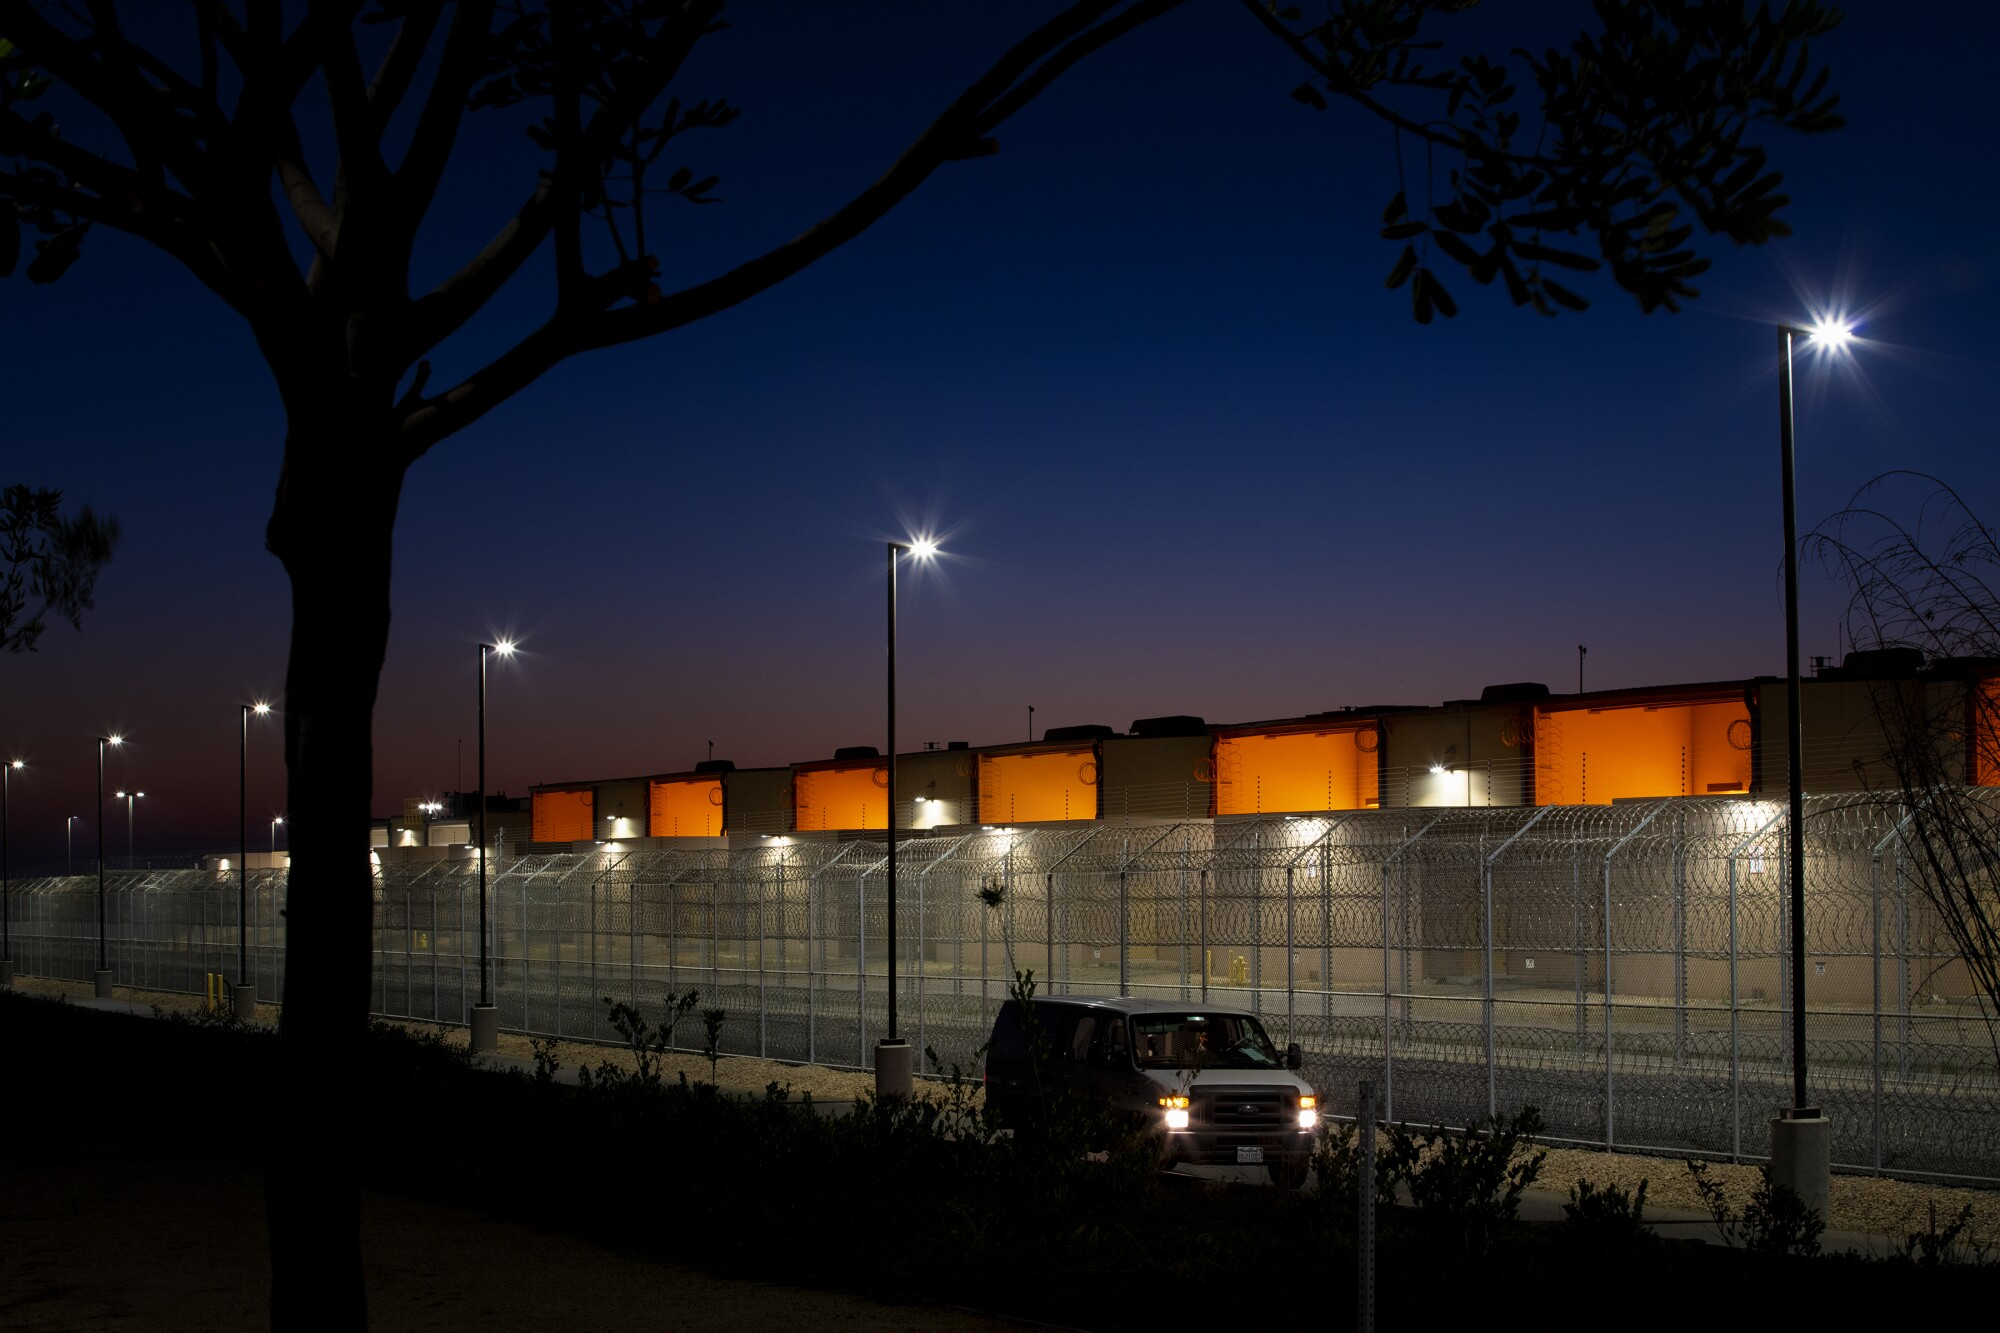 Otay Mesa Detention Center's fencing and the side of the building